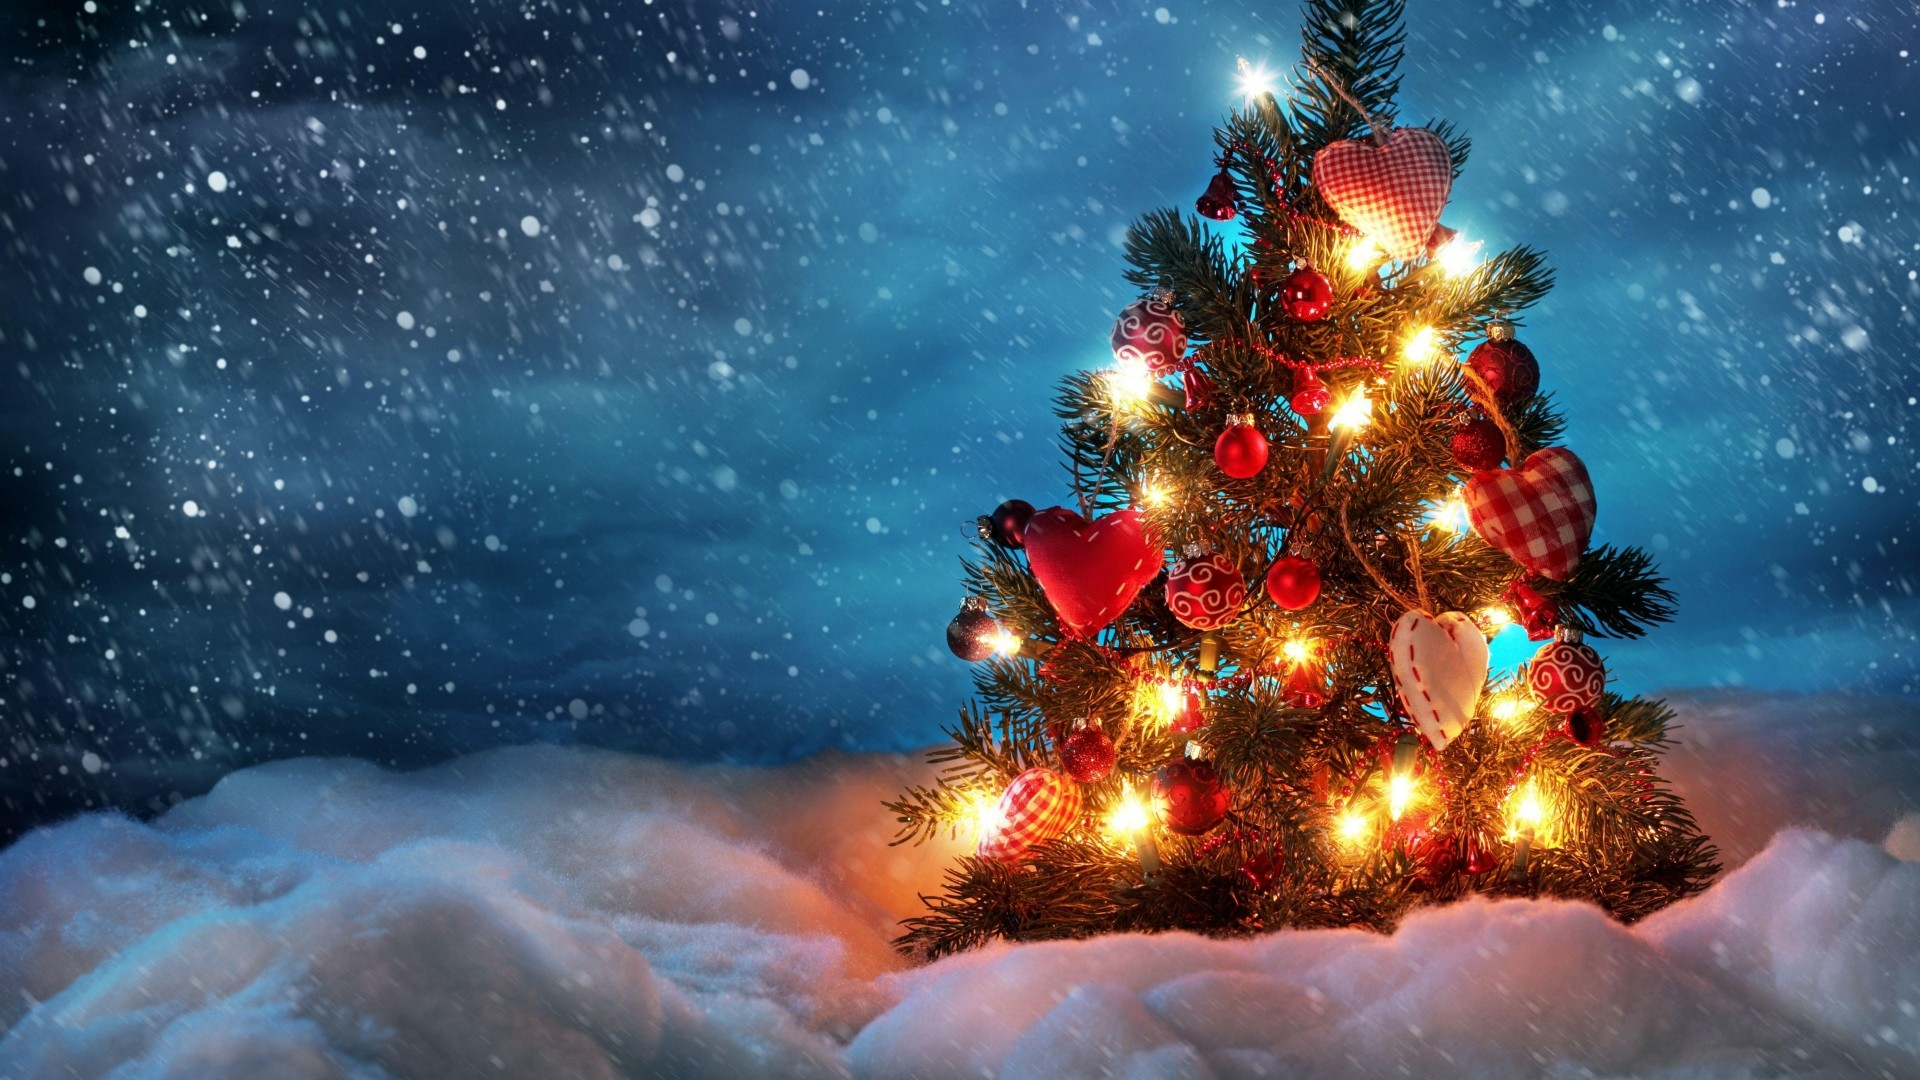 Res: 1920x1080, Awesome HD Christmas  Pictures › HD Christmas  Wallpapers